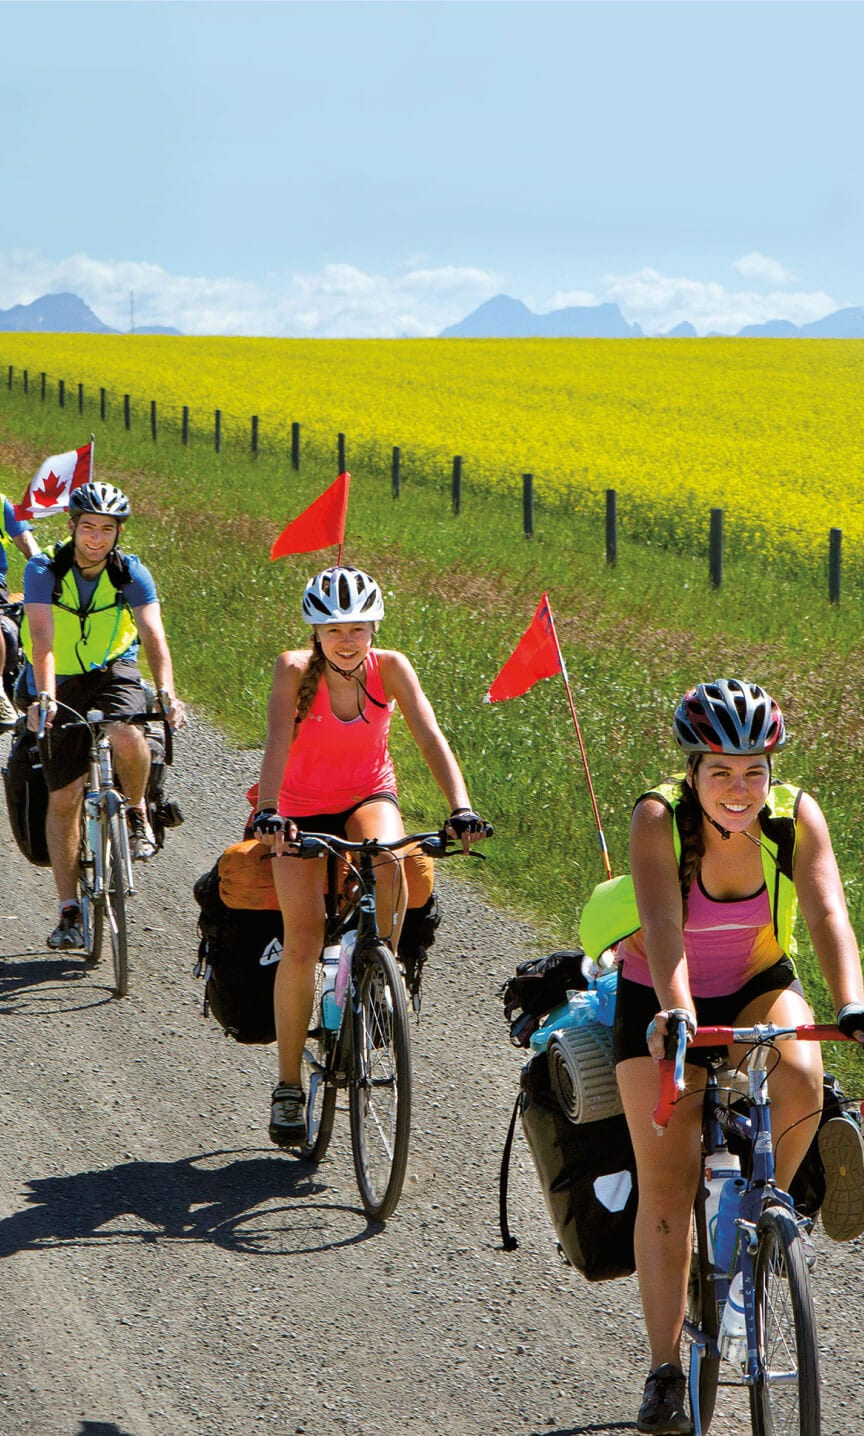 Teens biking through open meadows with summer wildflowers while on an adventure trip